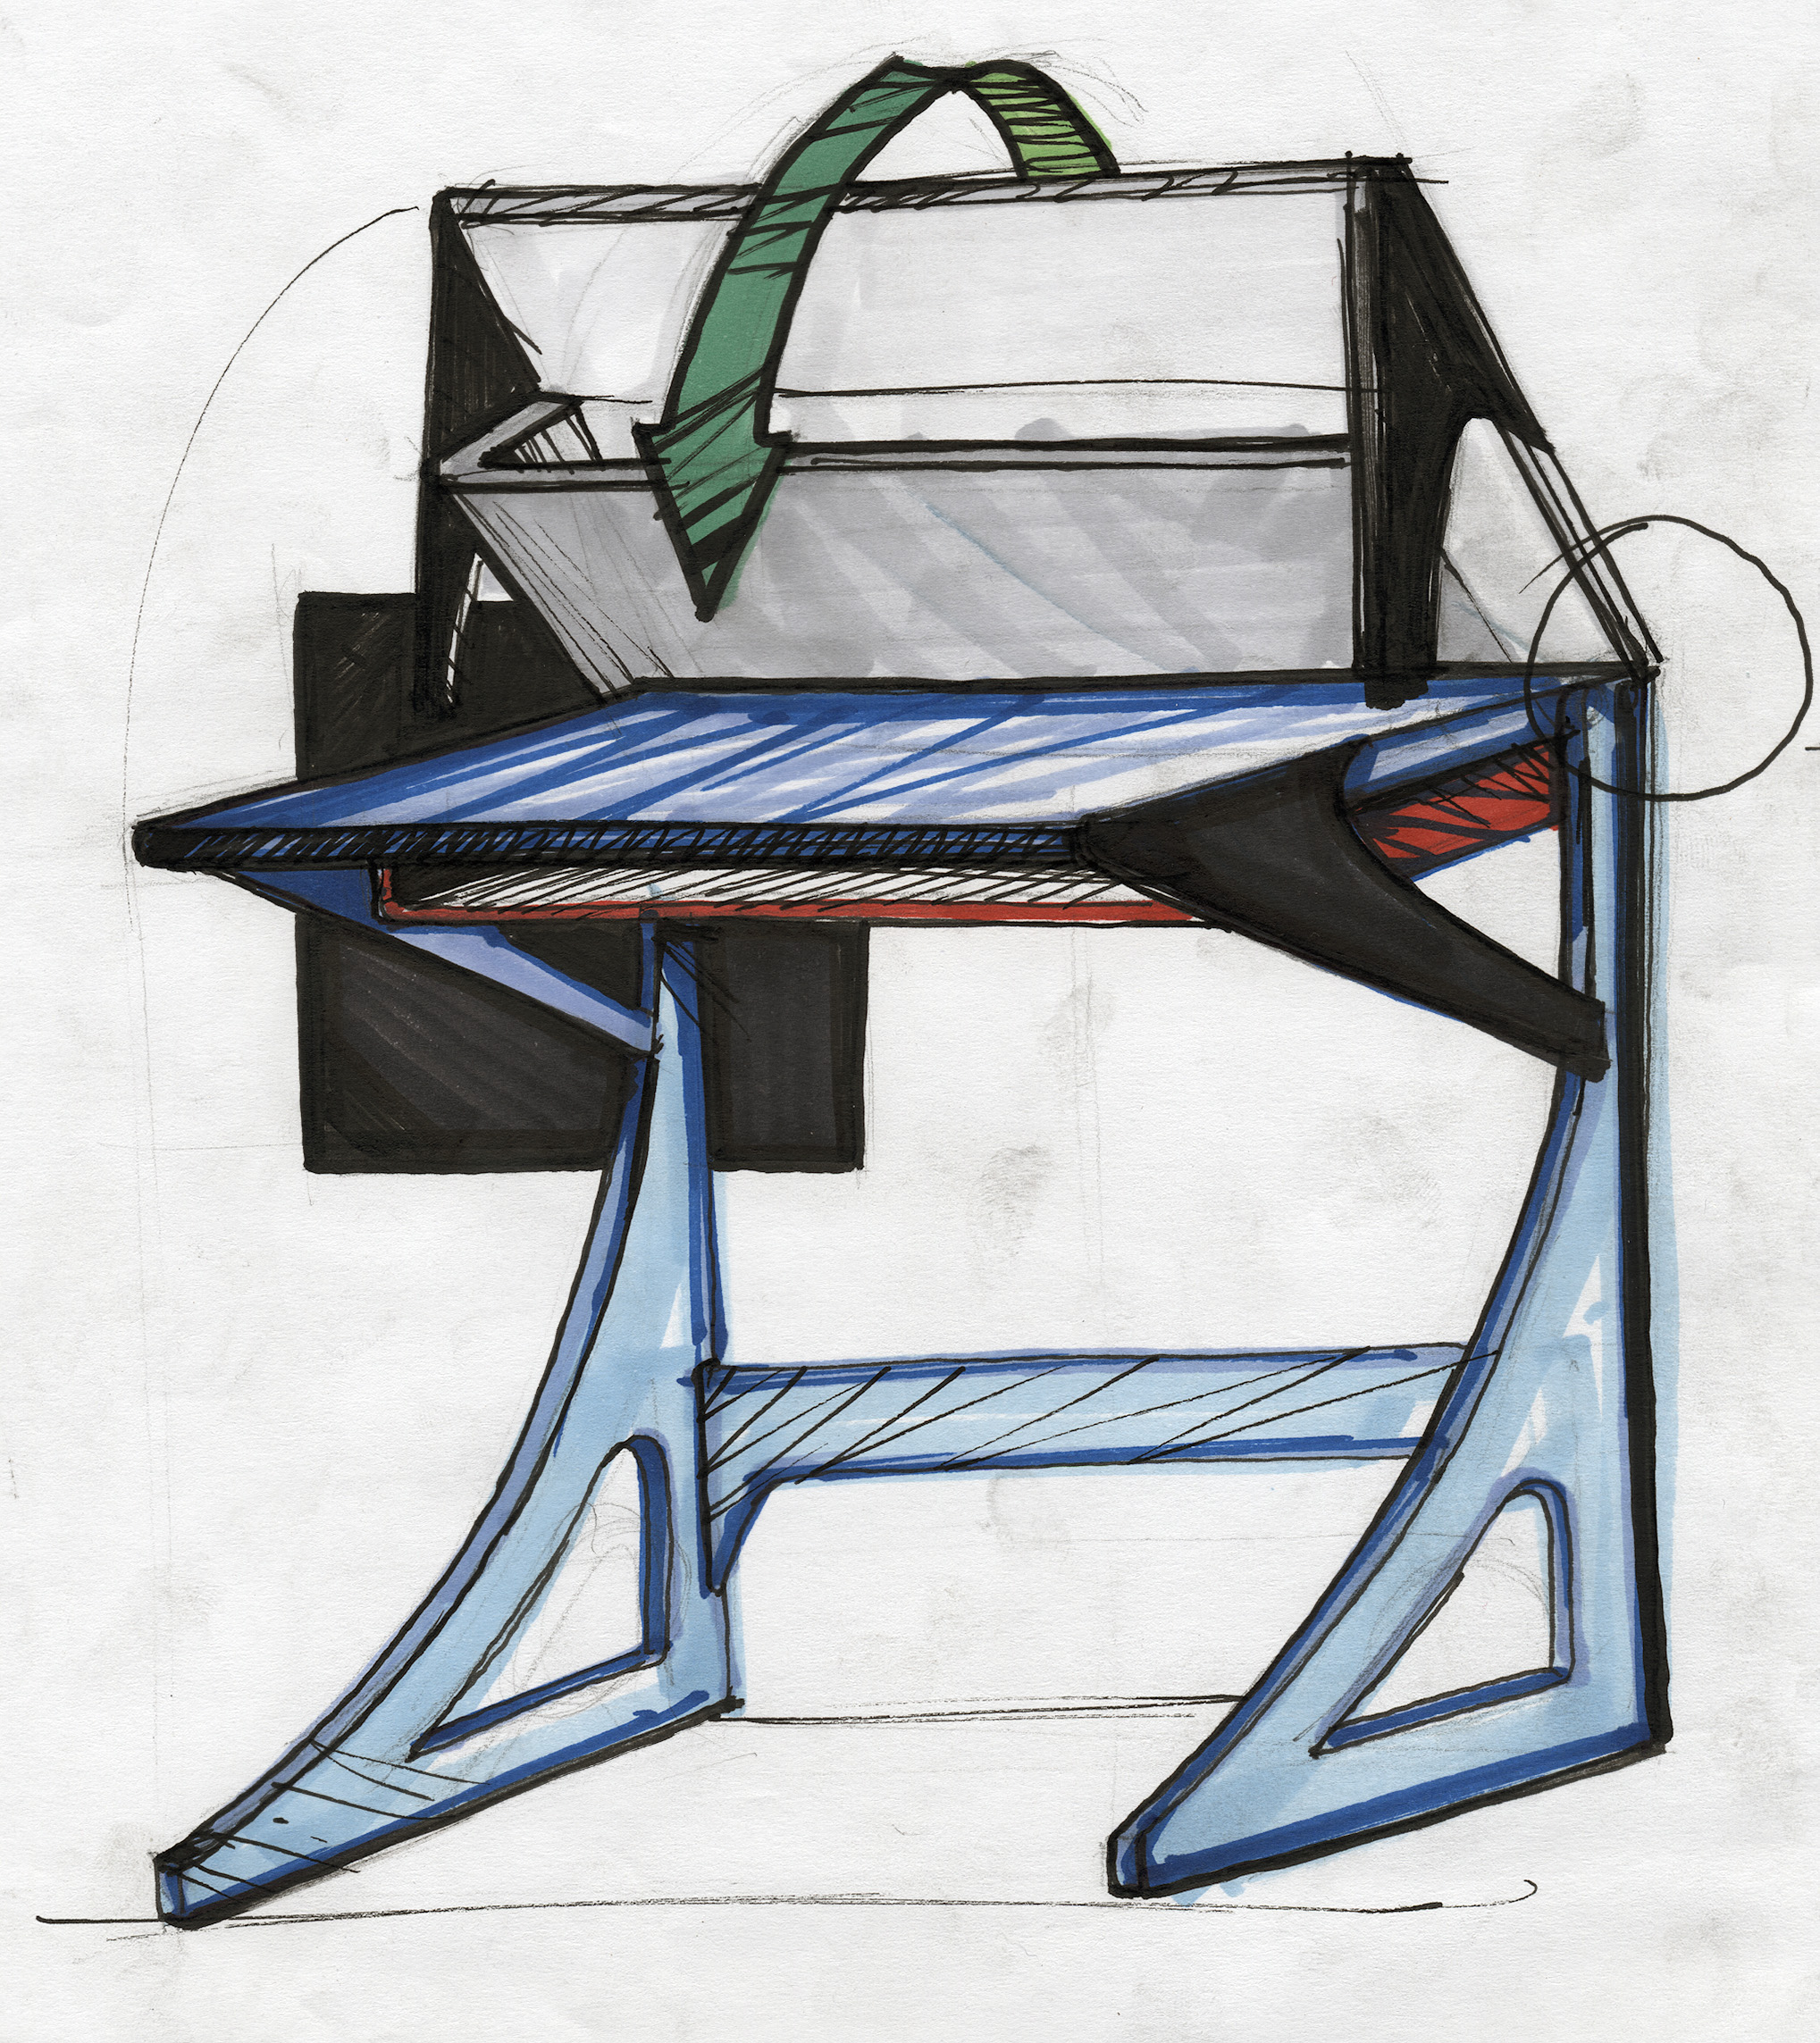 re designing the storage area under the typical school desk to optimize leg room - School Desk Design